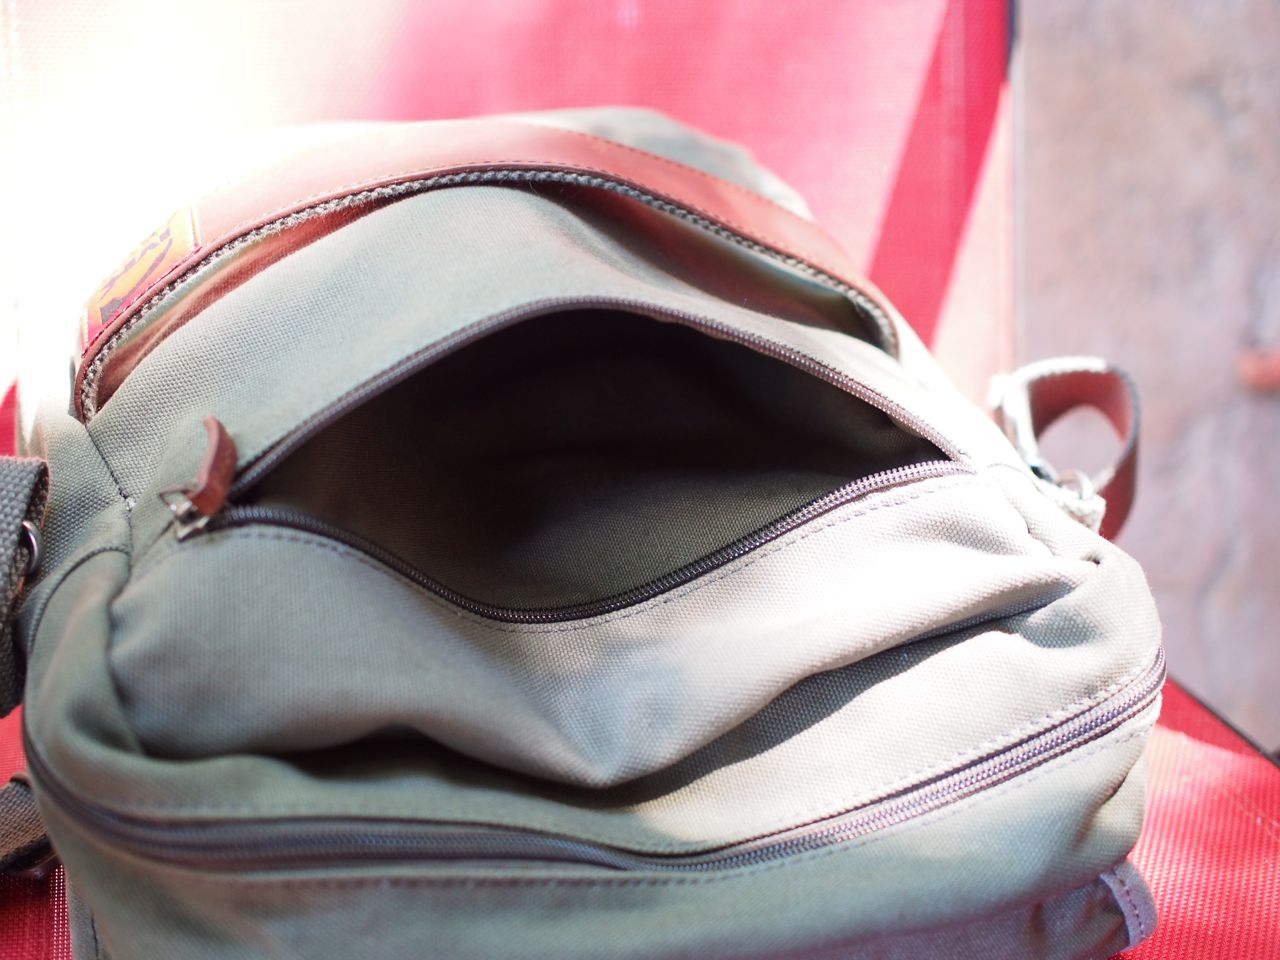 And Of Course A Laptop In The Padded Sleeve I Ve Carried Either 13 Macbook Pro Retina Or 15 Mountain Khakis Field Bag